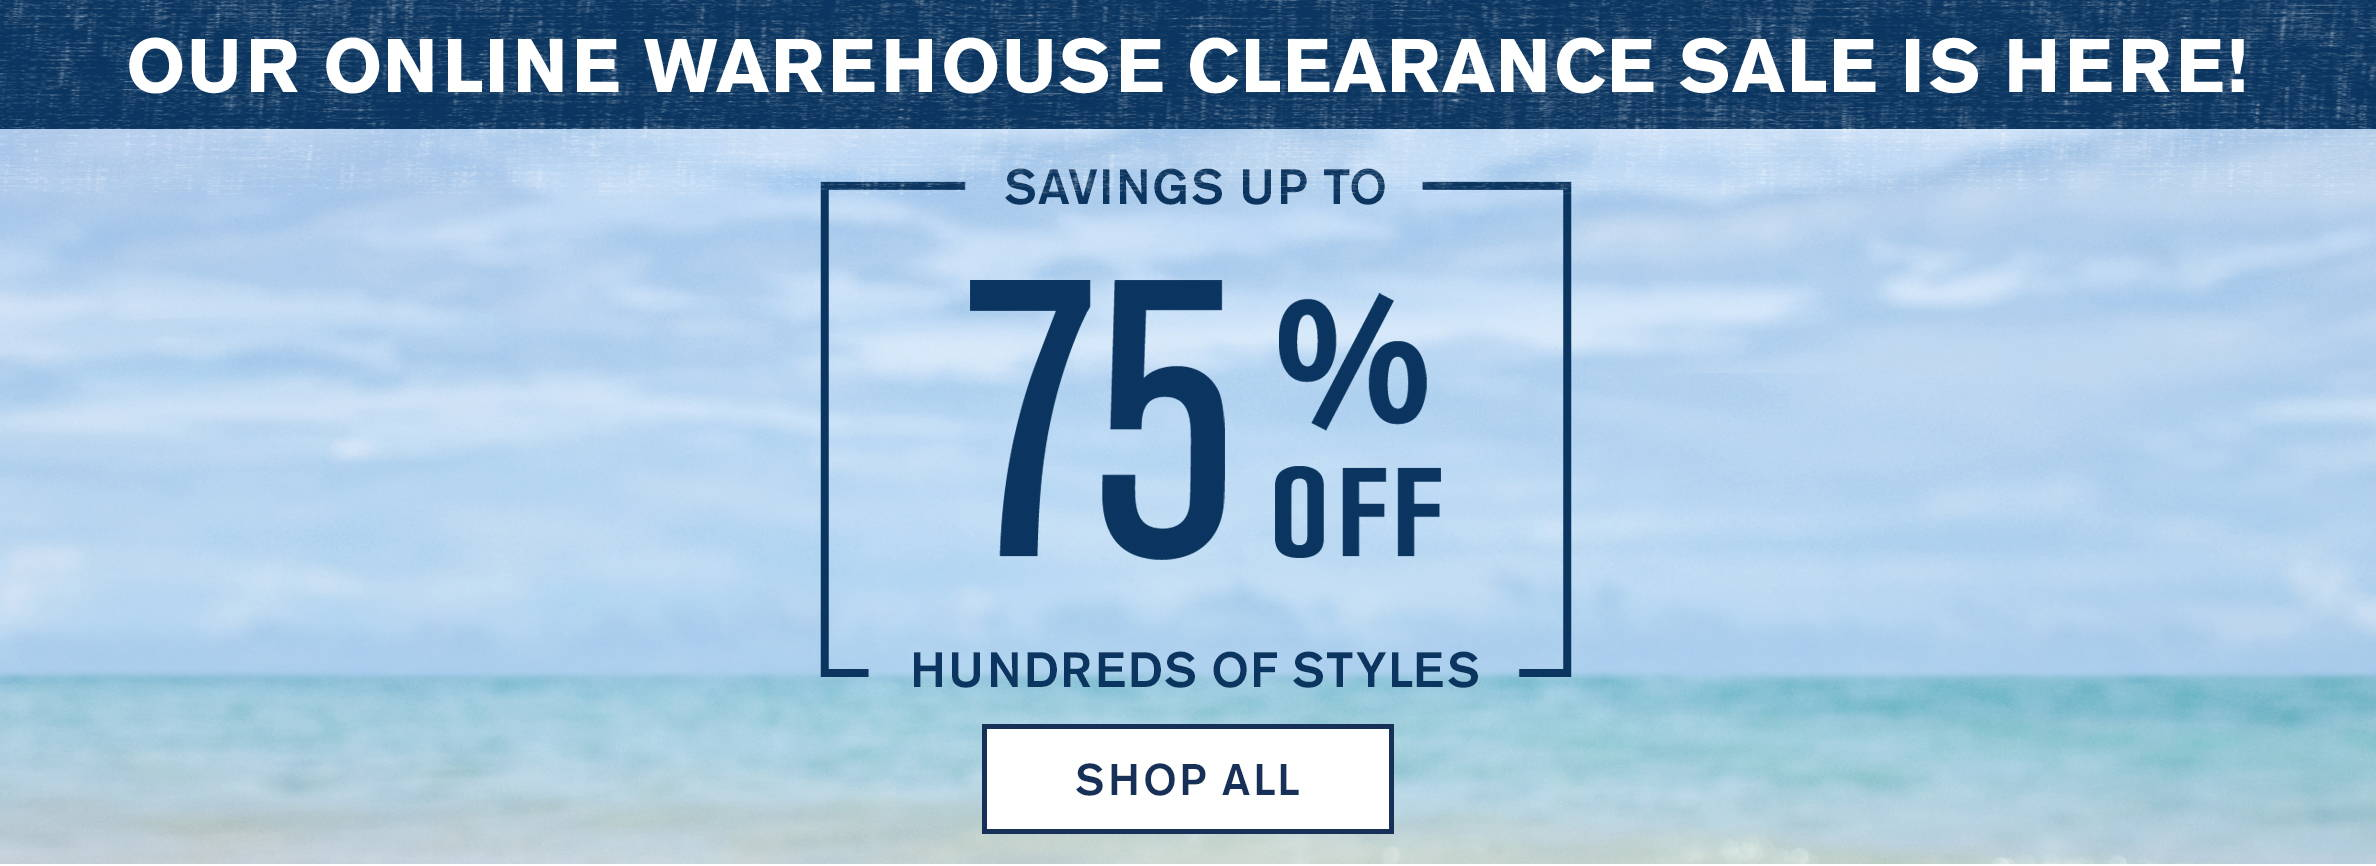 Online Warehouse Clearance Up to 75% Off